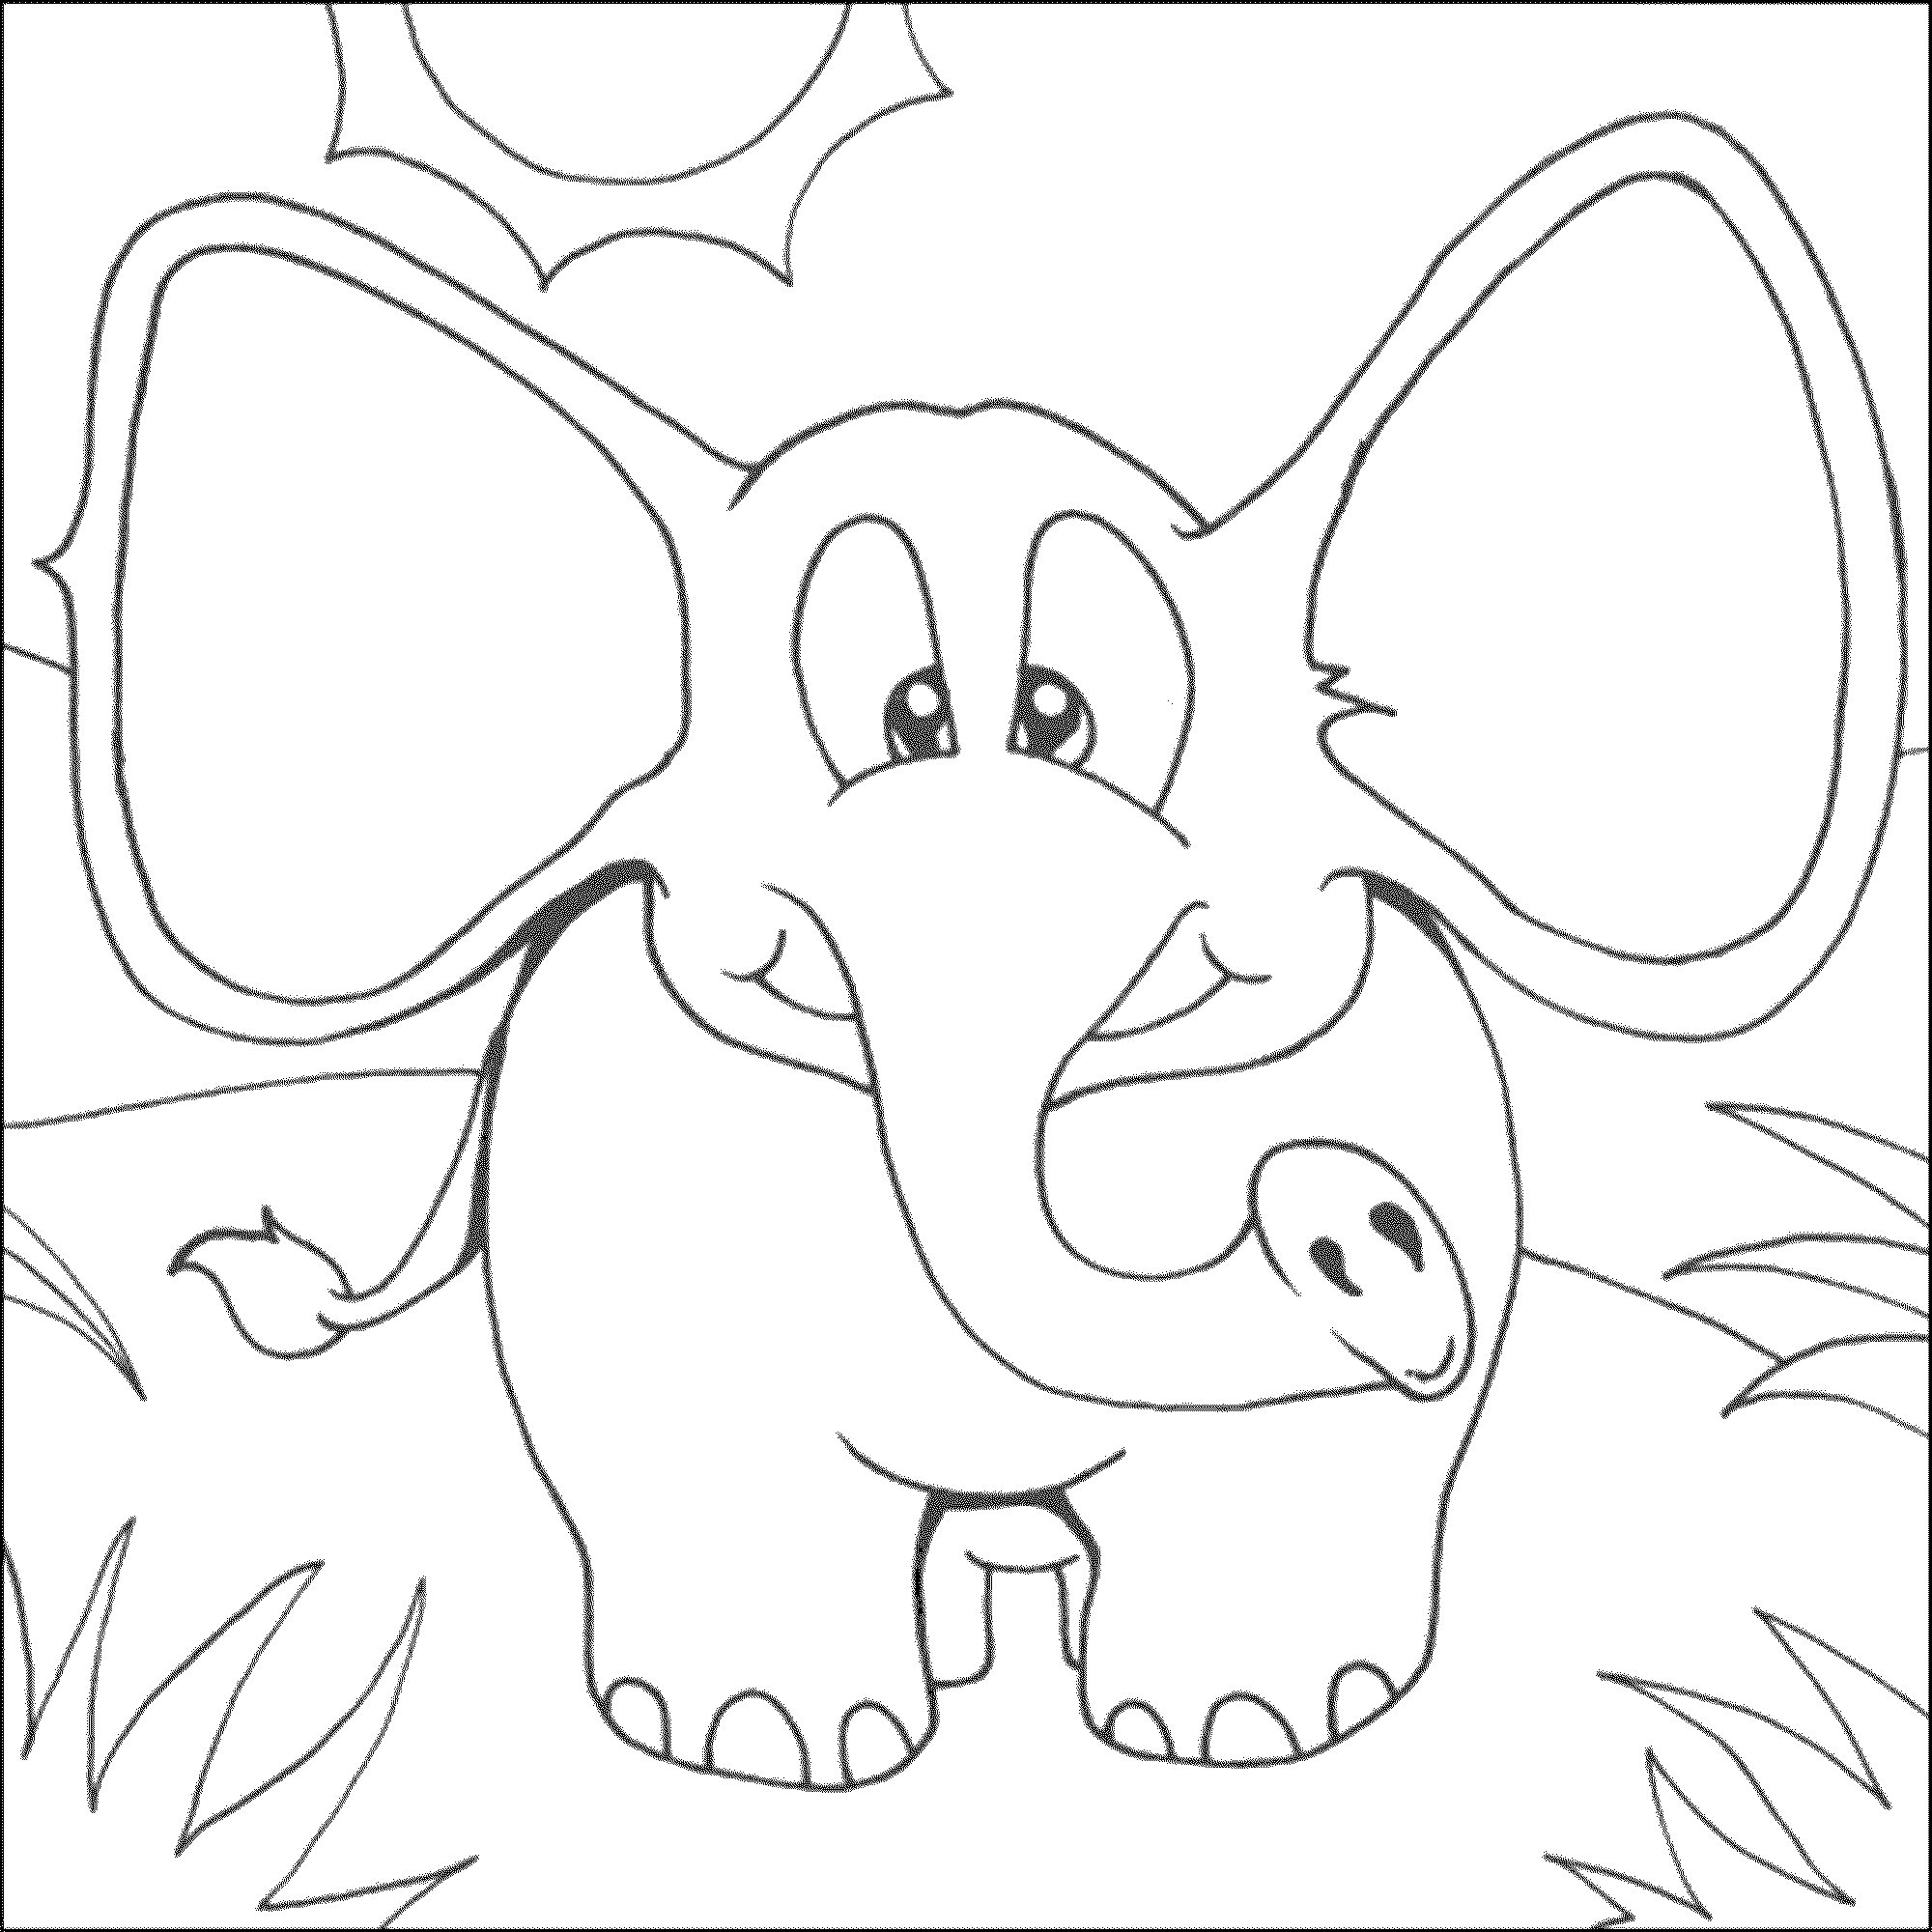 colouring pictures of elephant print download teaching kids through elephant coloring of colouring pictures elephant